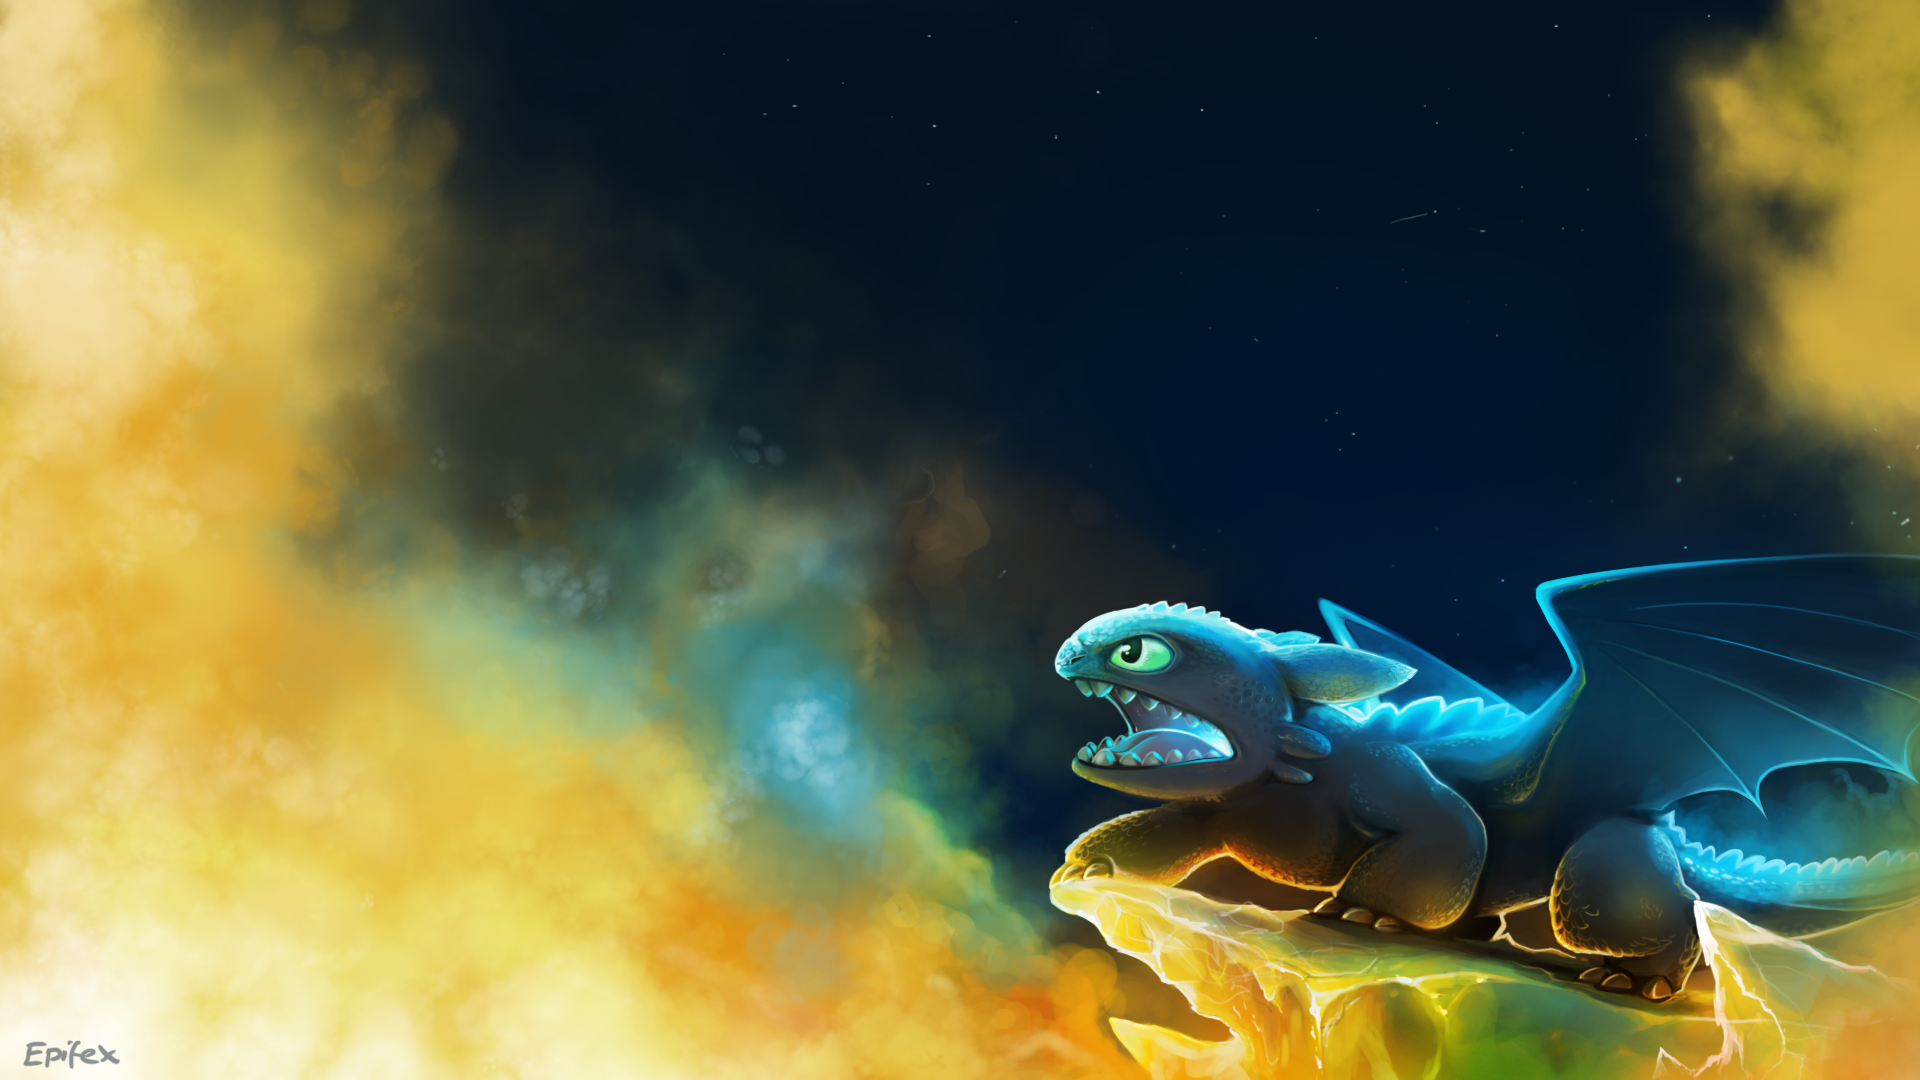 Toothless by epifex on deviantart - Wallpaper picture ...